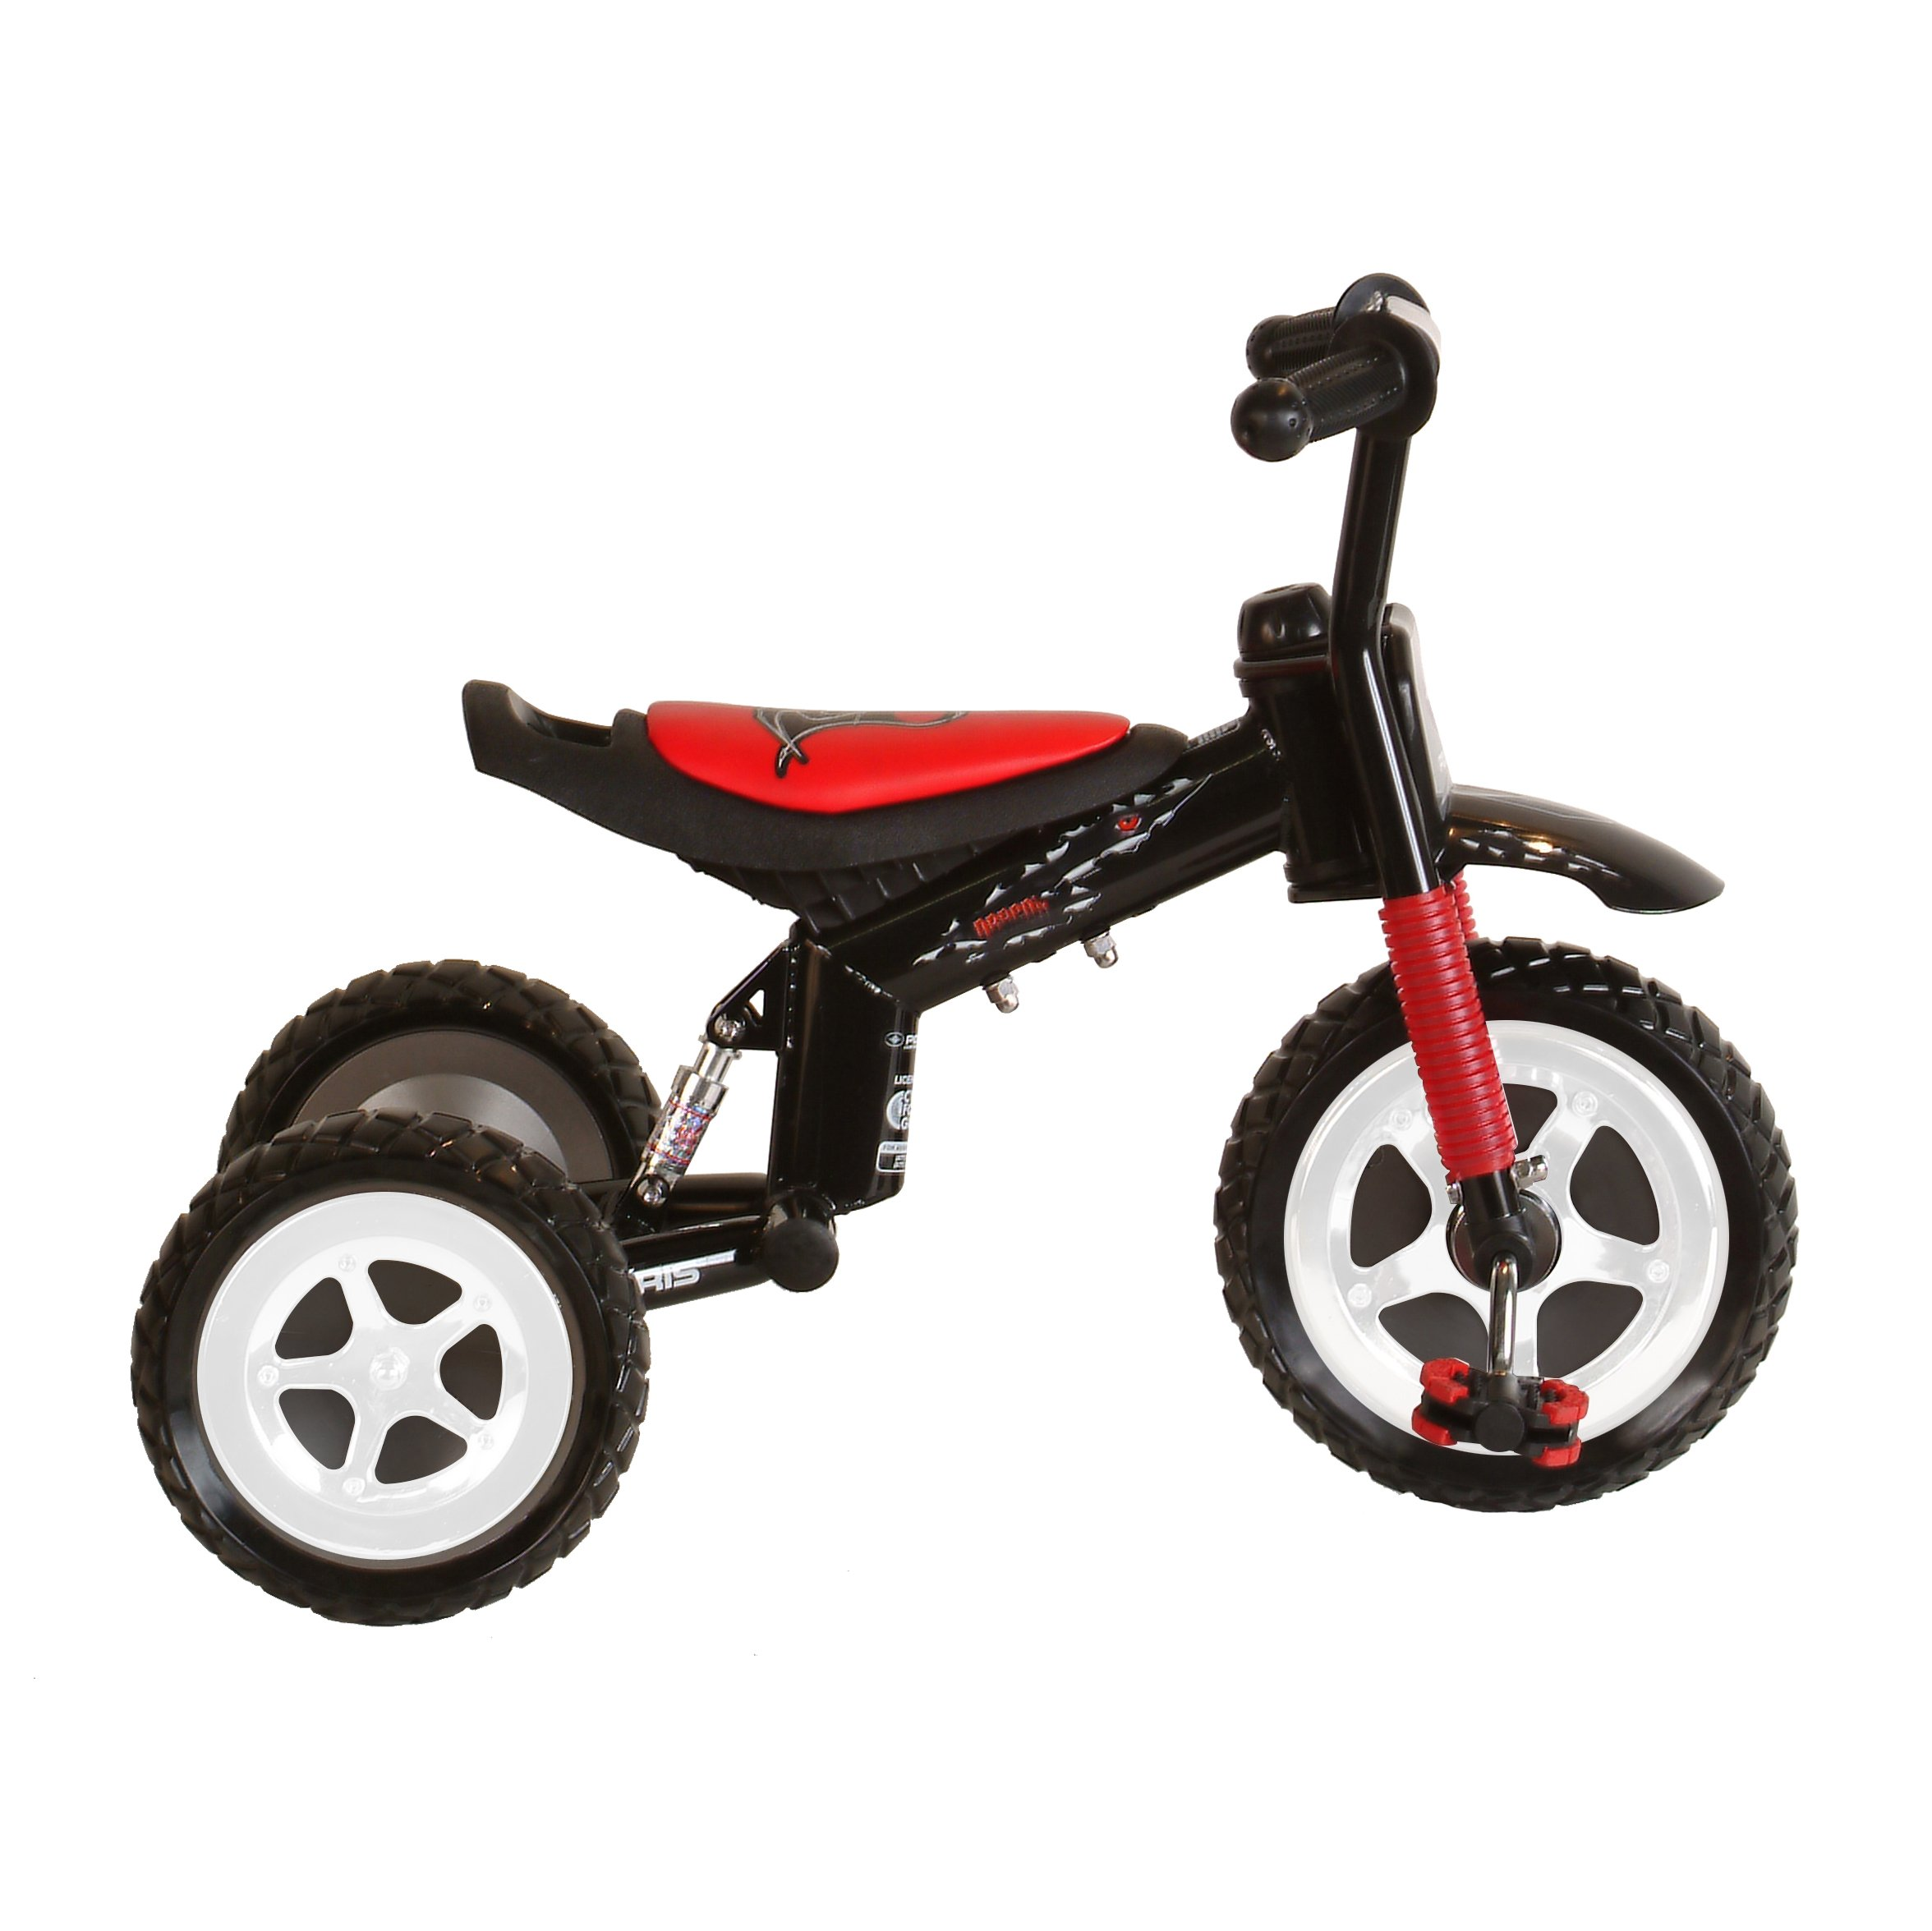 Polaris Dragon Tricycle with Steel Frame and Suspension Fork, 10 inch Wheels, for Boys and Girls, Red/Black by Polaris (Image #1)